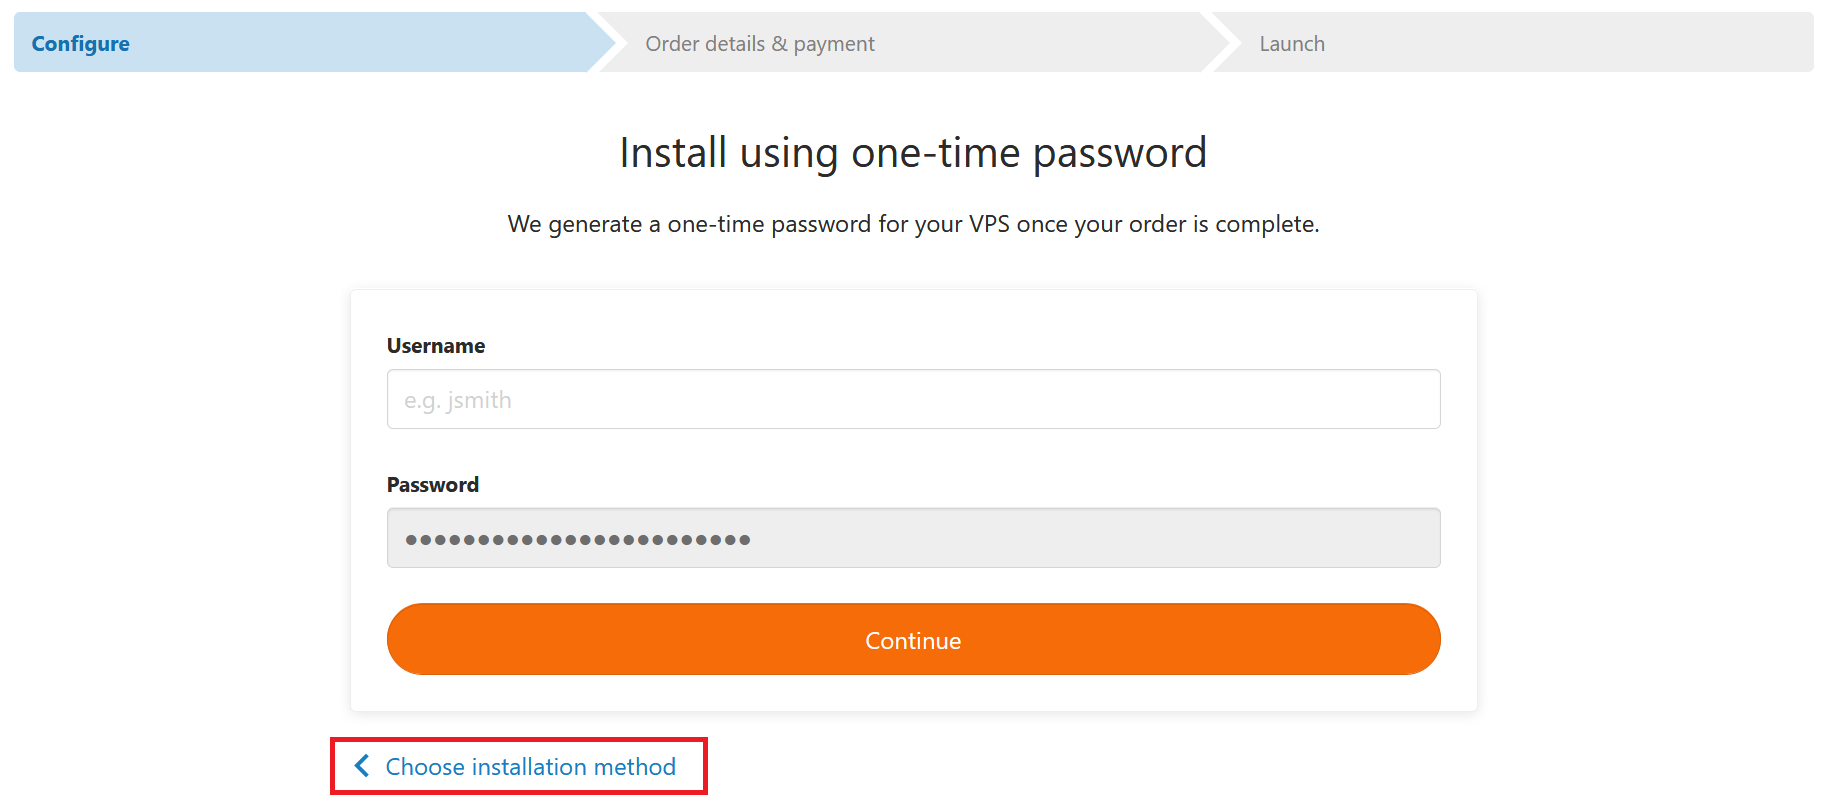 vps fast installs one time password - choose other installation method